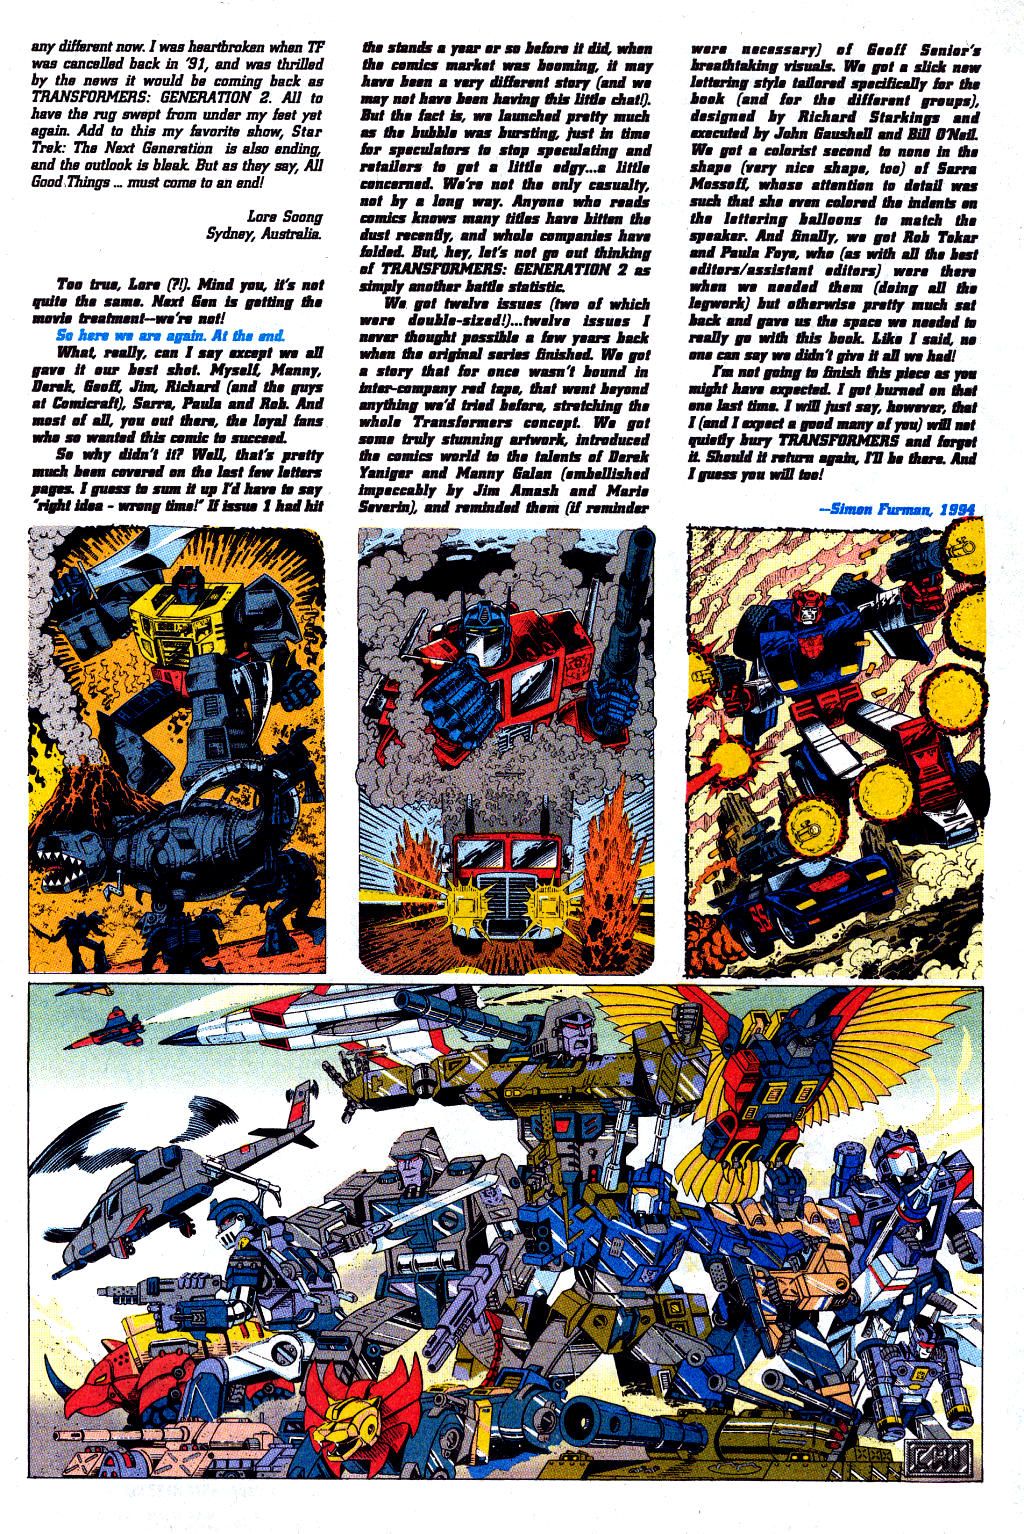 Read online Transformers: Generation 2 comic -  Issue #12 - 39